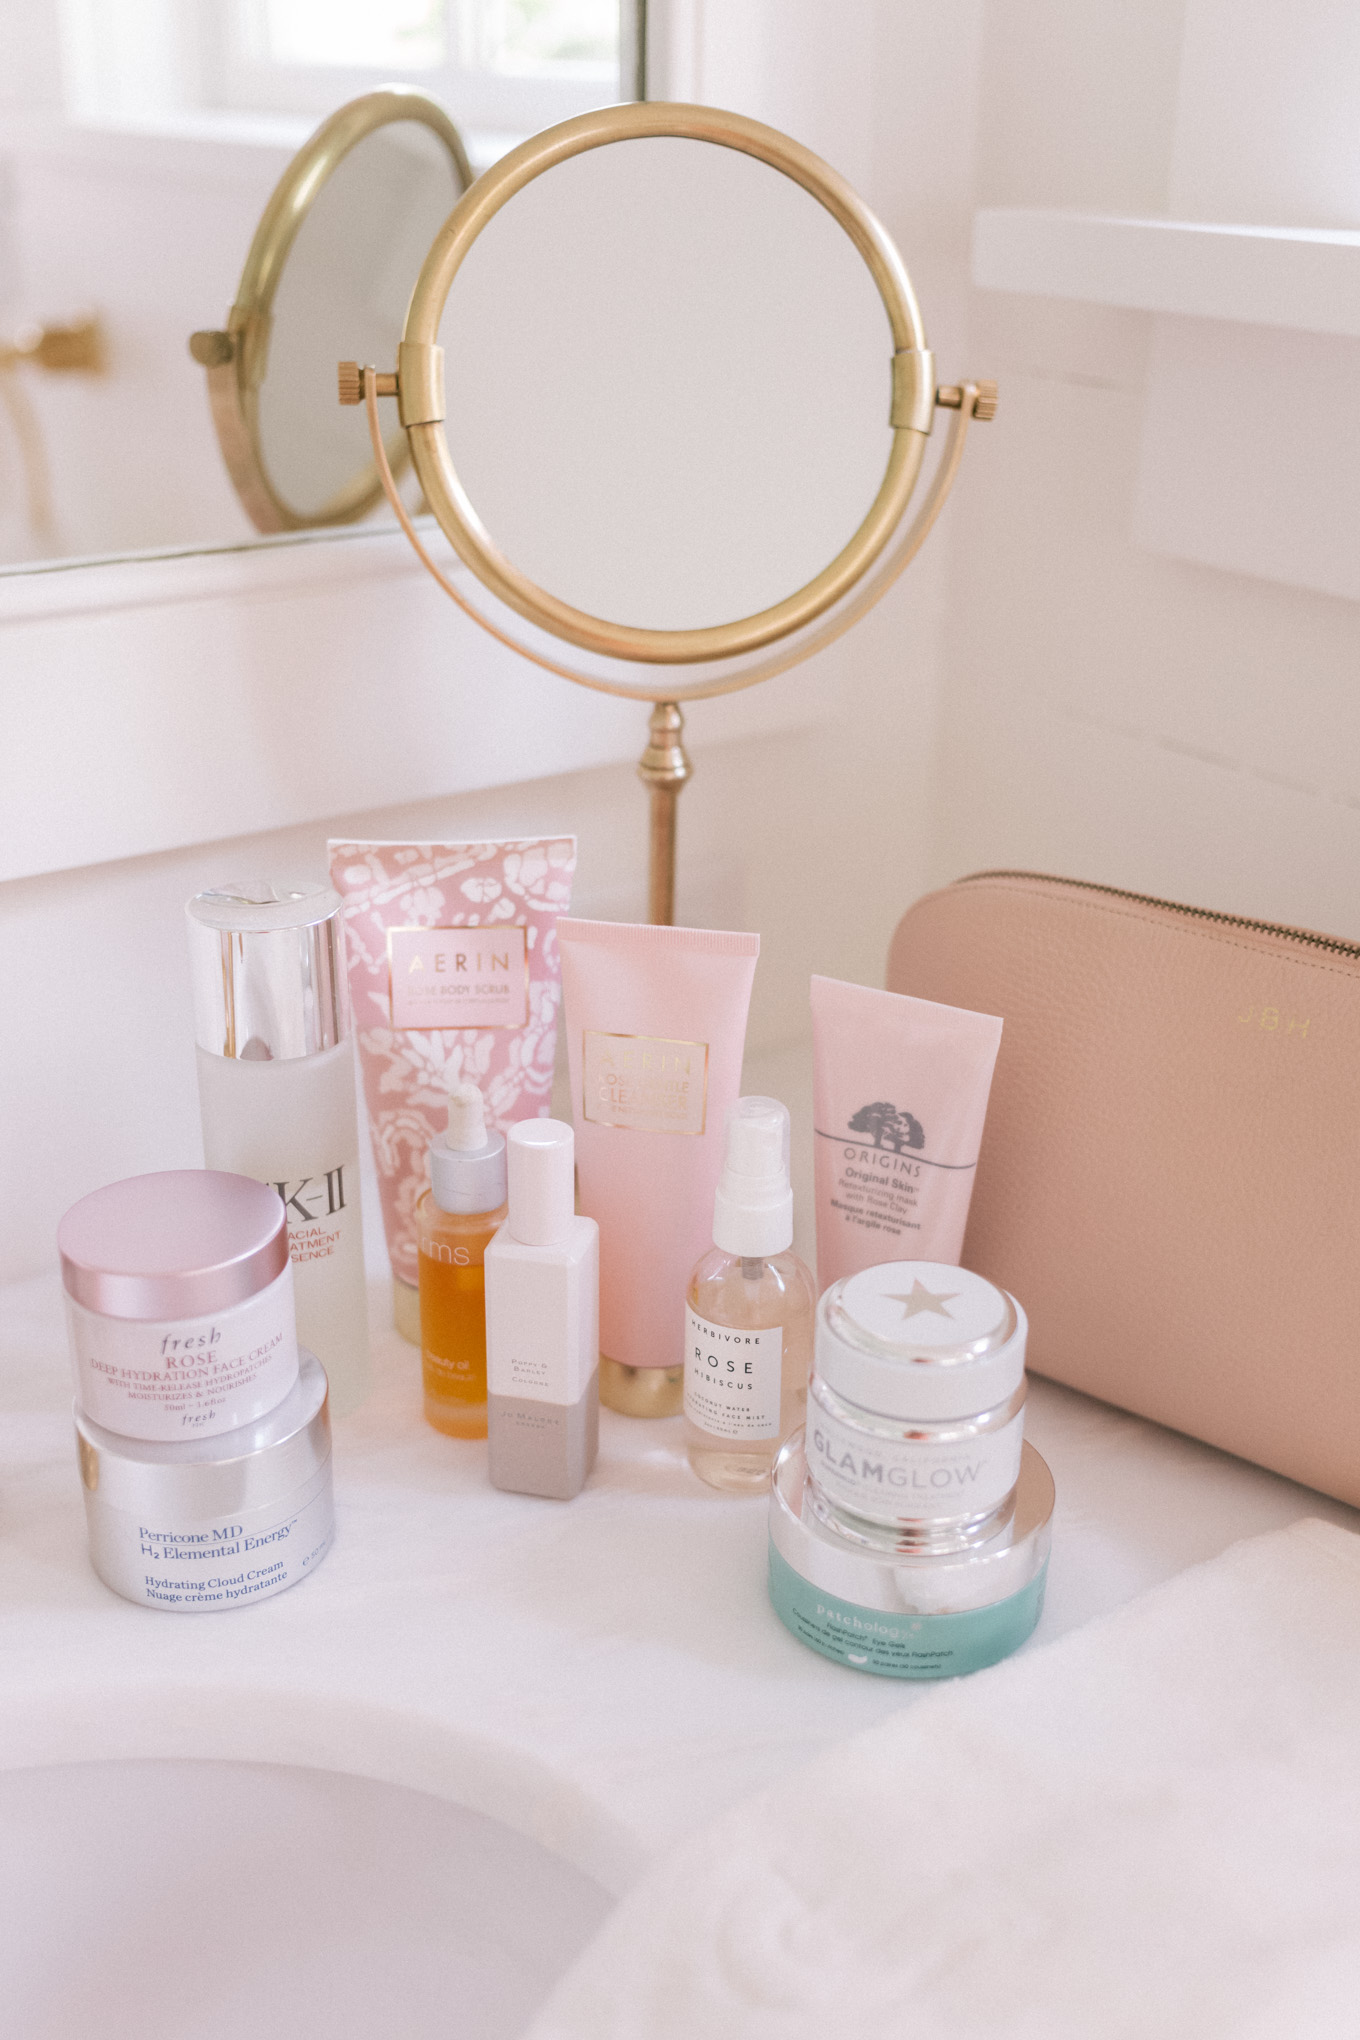 Answering The Top Beauty Related Questions I Get Asked - Gal